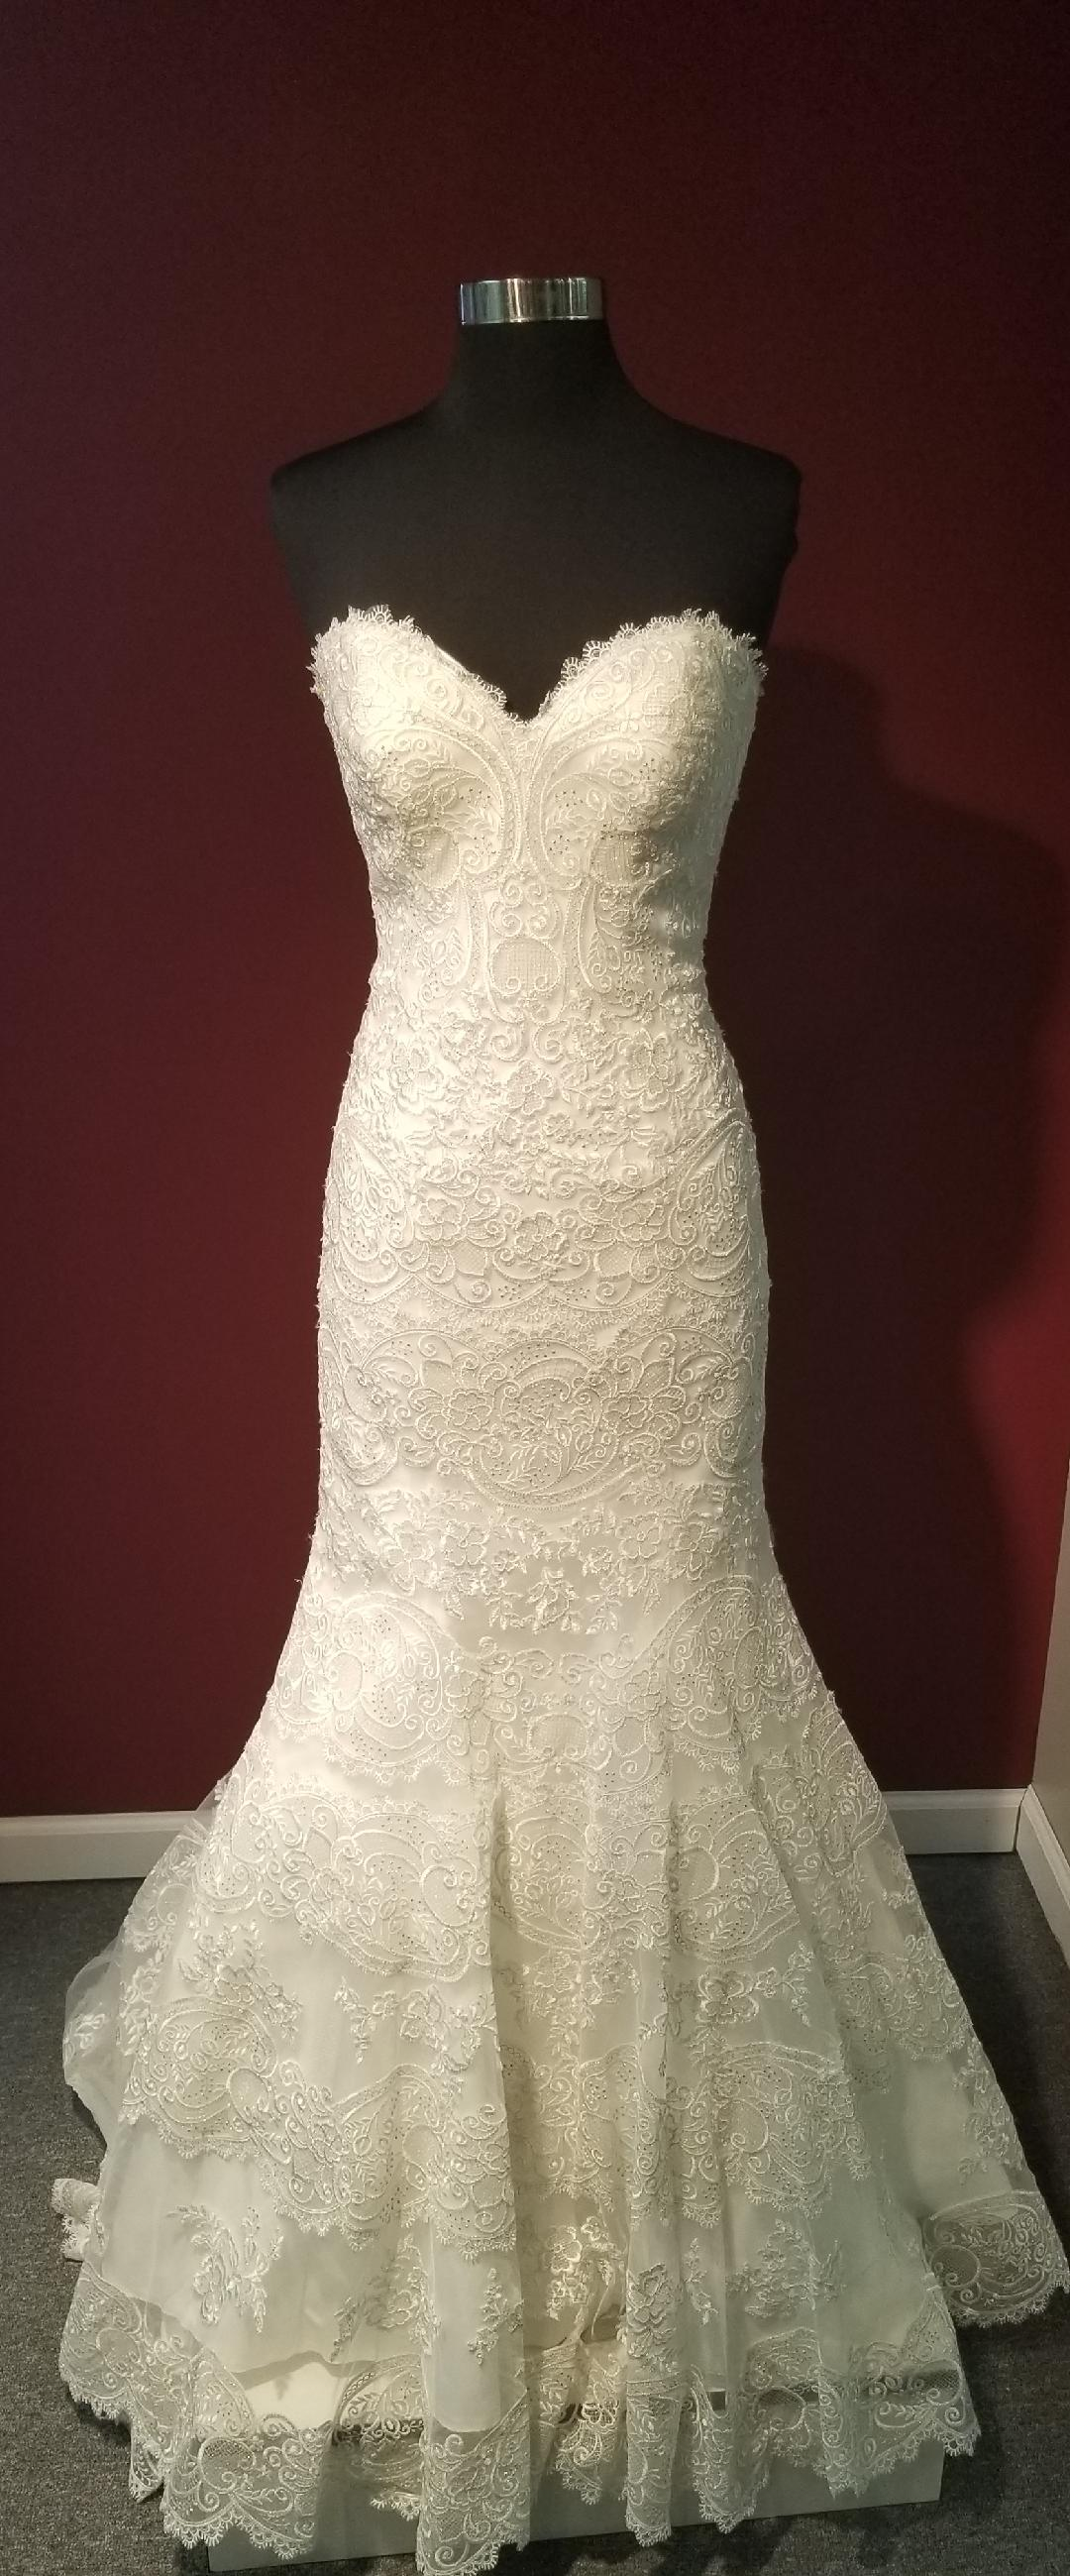 10% Off Wedding Dress Sale